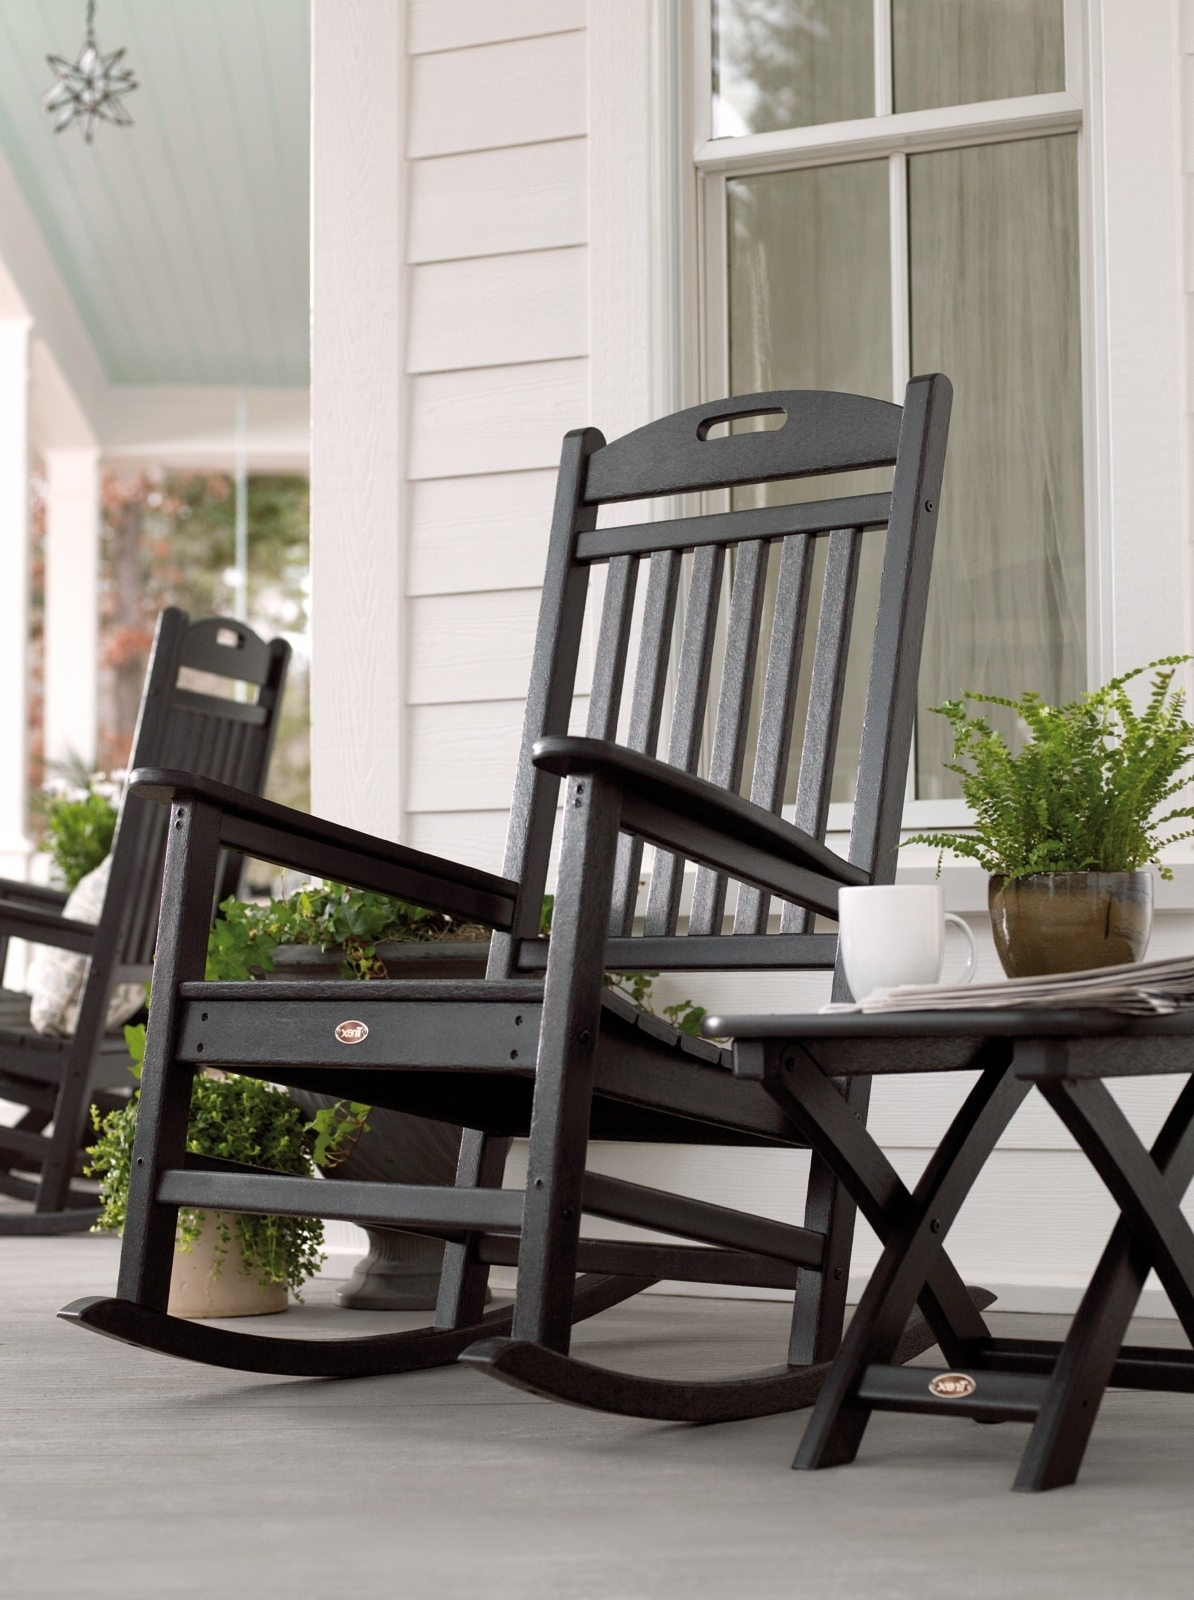 Preferred Patio & Garden : Outdoor Rocking Chair Seat Cushions Outdoor Rocking Within Outside Rocking Chair Sets (View 12 of 15)